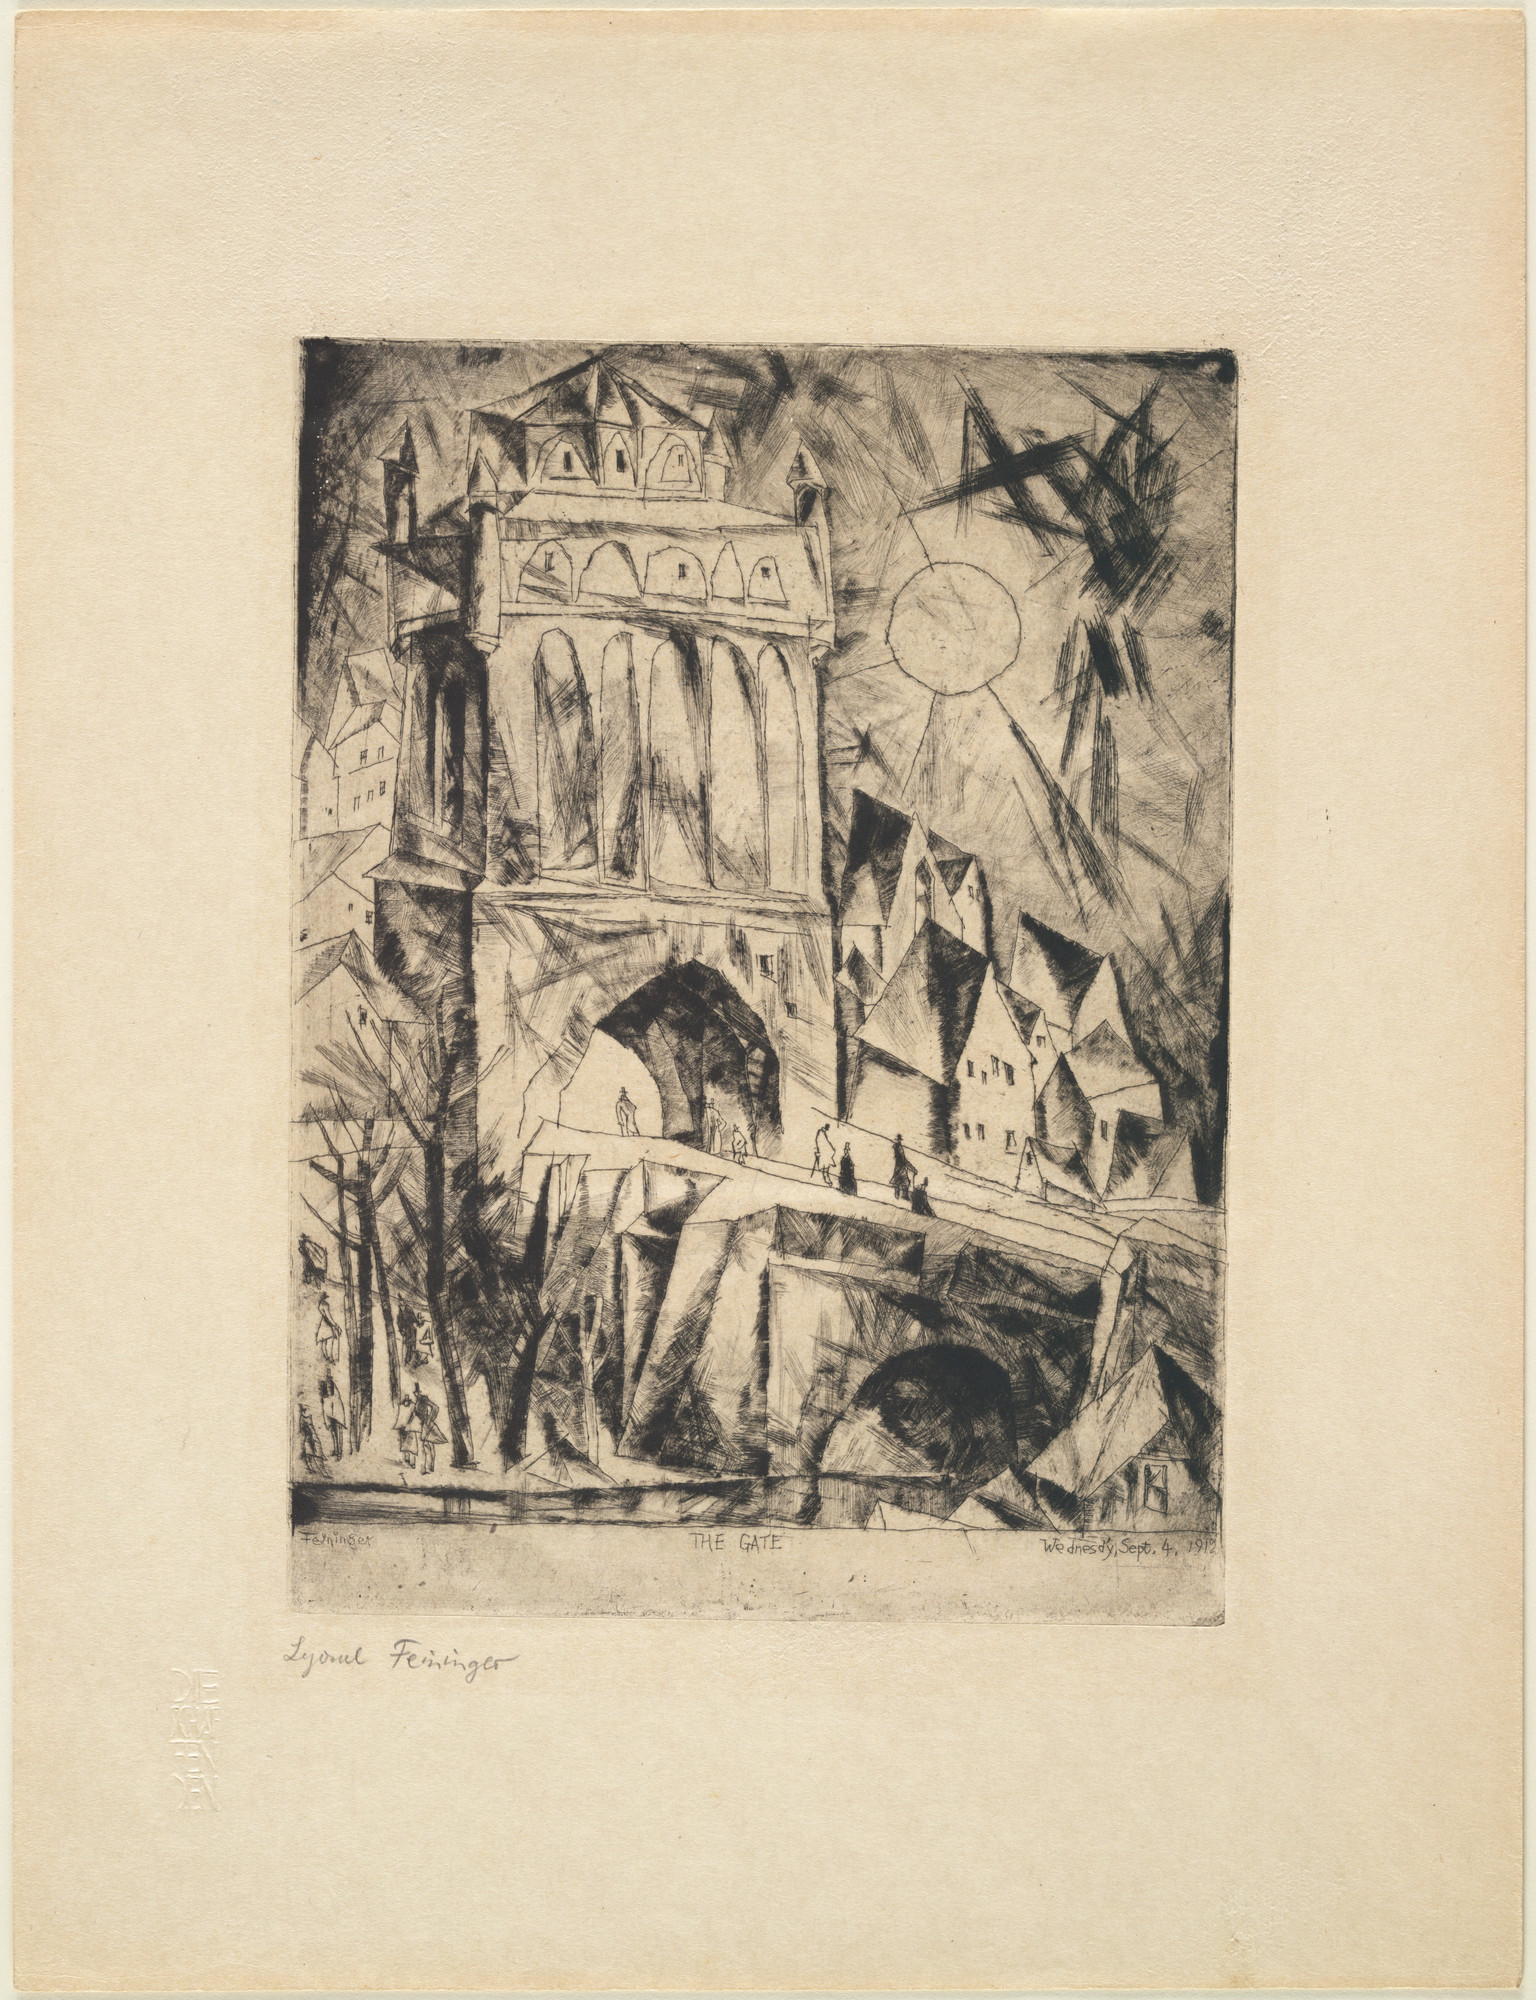 Lyonel Feininger. The Gate (Das Tor) from the portfolio Die Schaffenden, vol. 1, no. 1. (1912, published 1918)